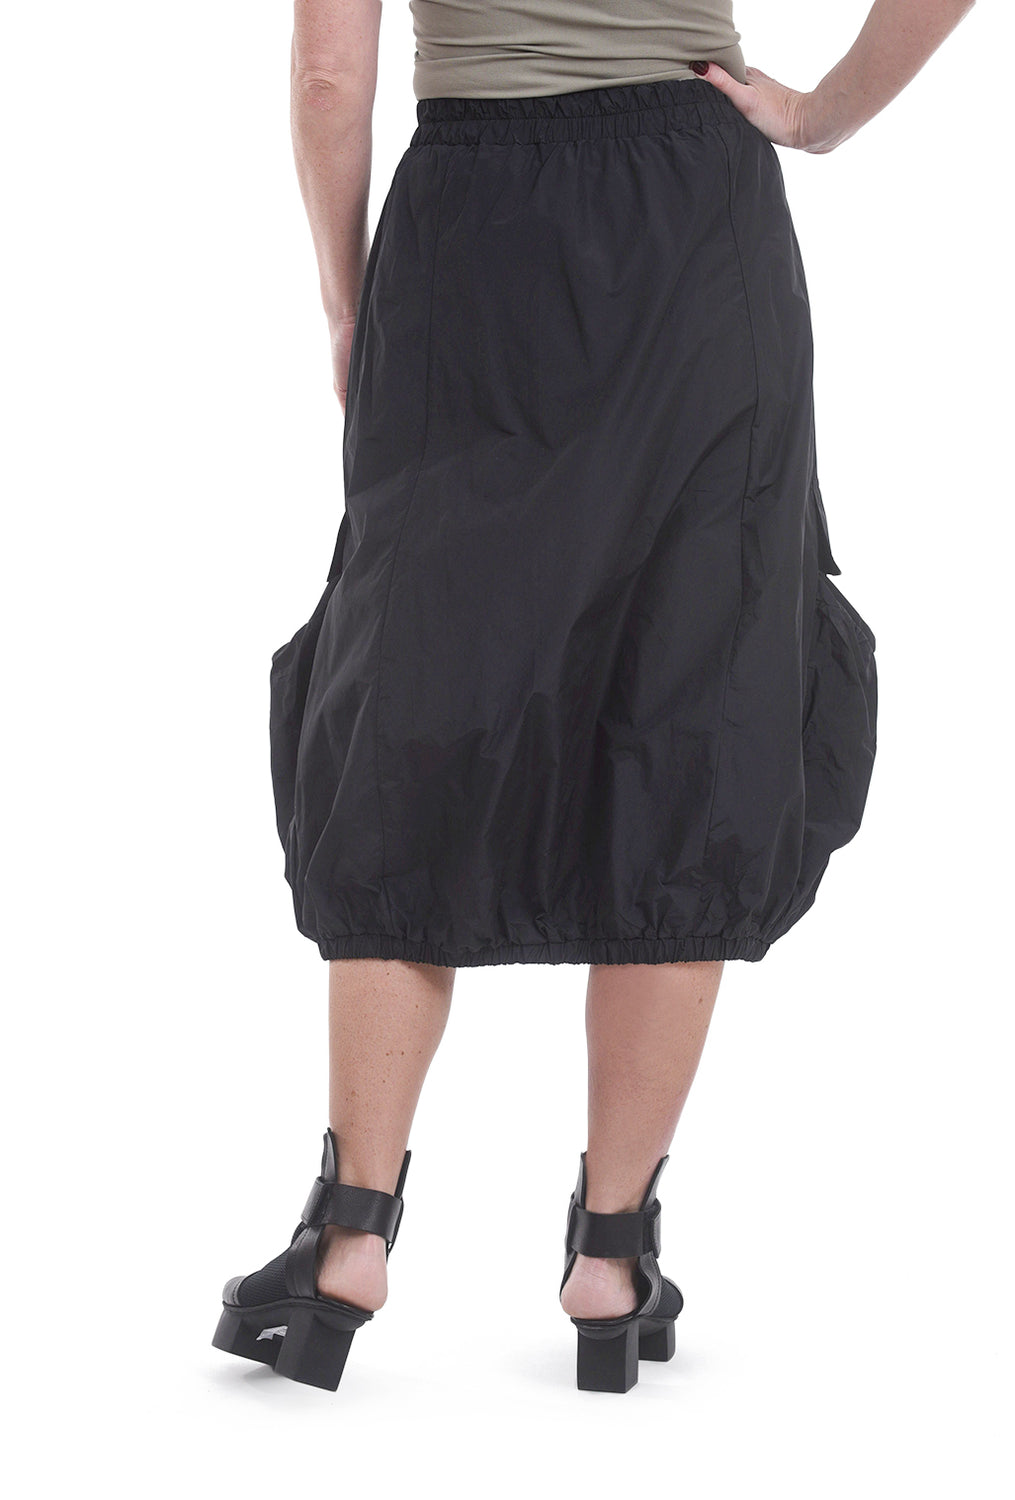 Luukaa Nikki Nylon Bubble Skirt, Black